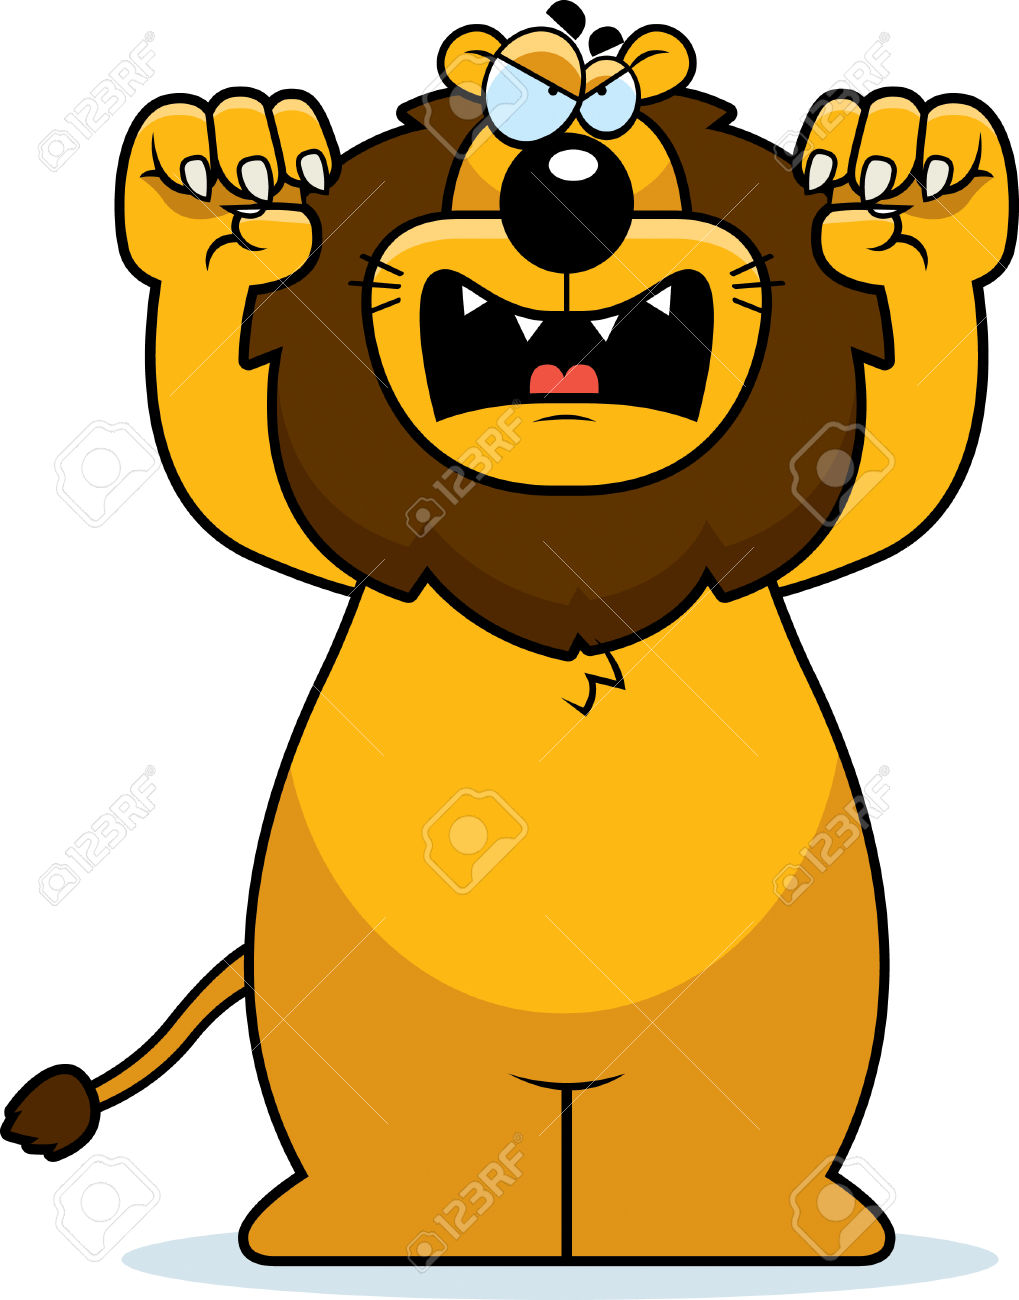 A Cartoon Lion With Claws Out Ready To Attack. Royalty Free.